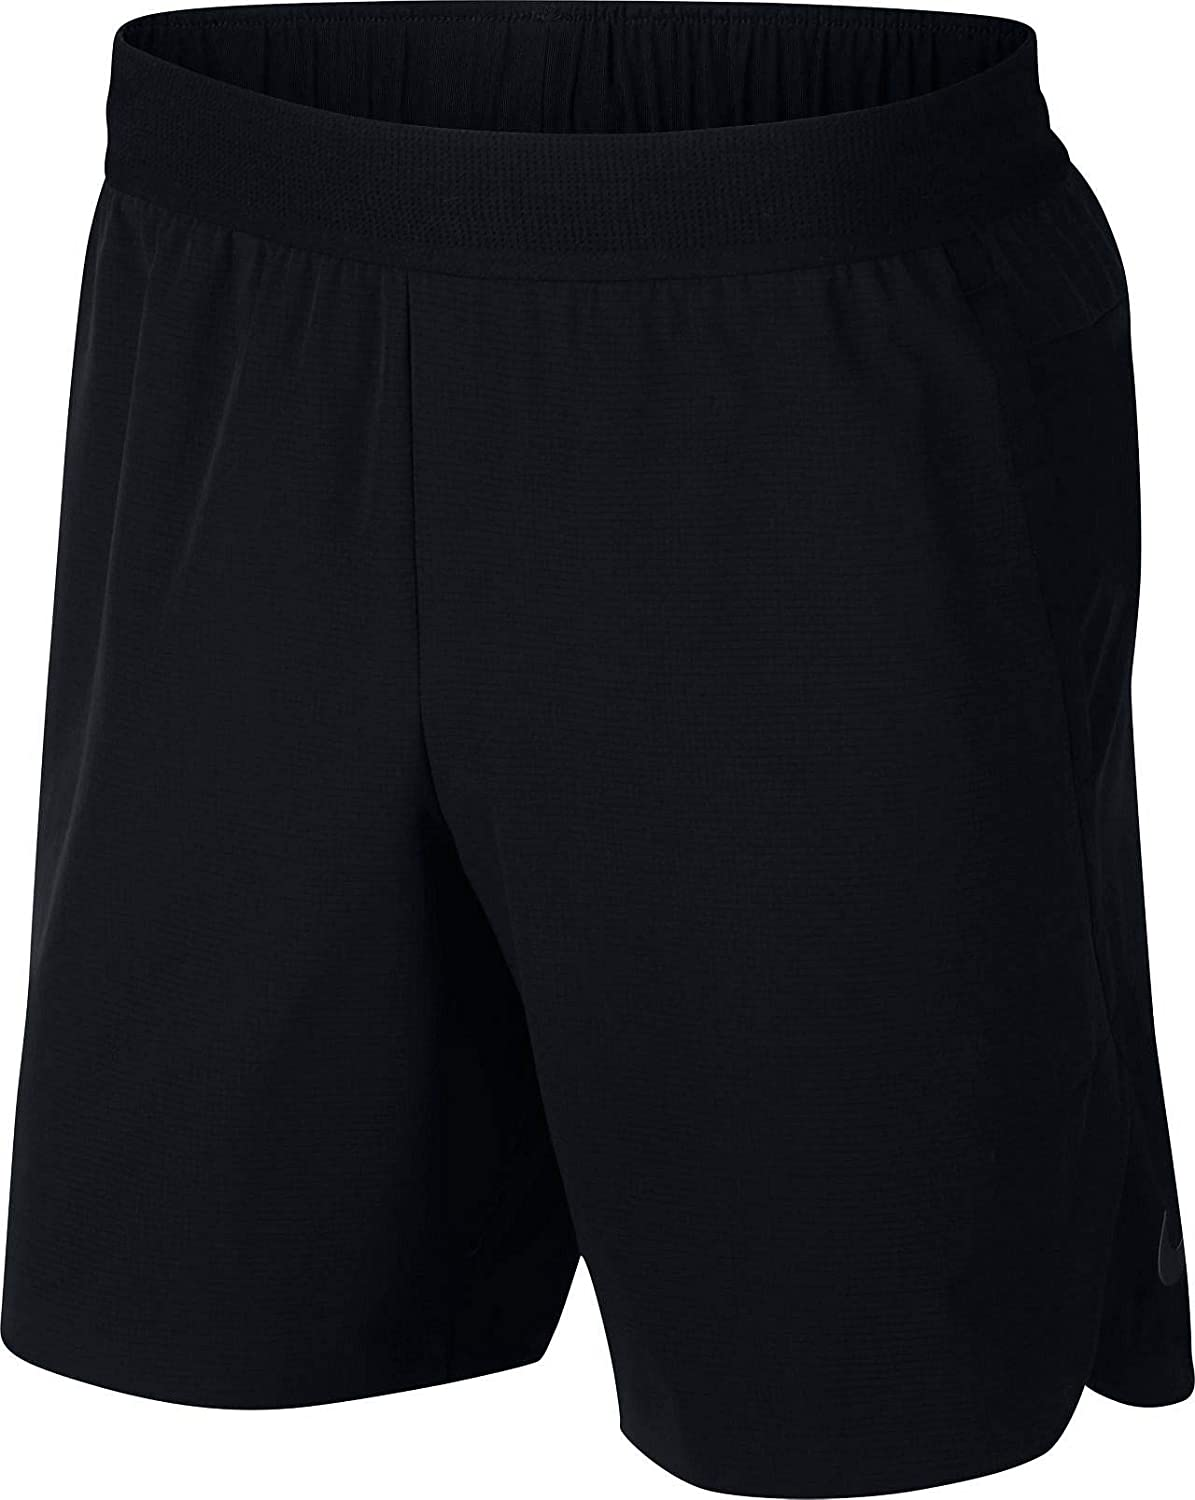 Nike Men's M NK FLX REPEL 4.0 Shorts, Black Metallic Hematite, Large